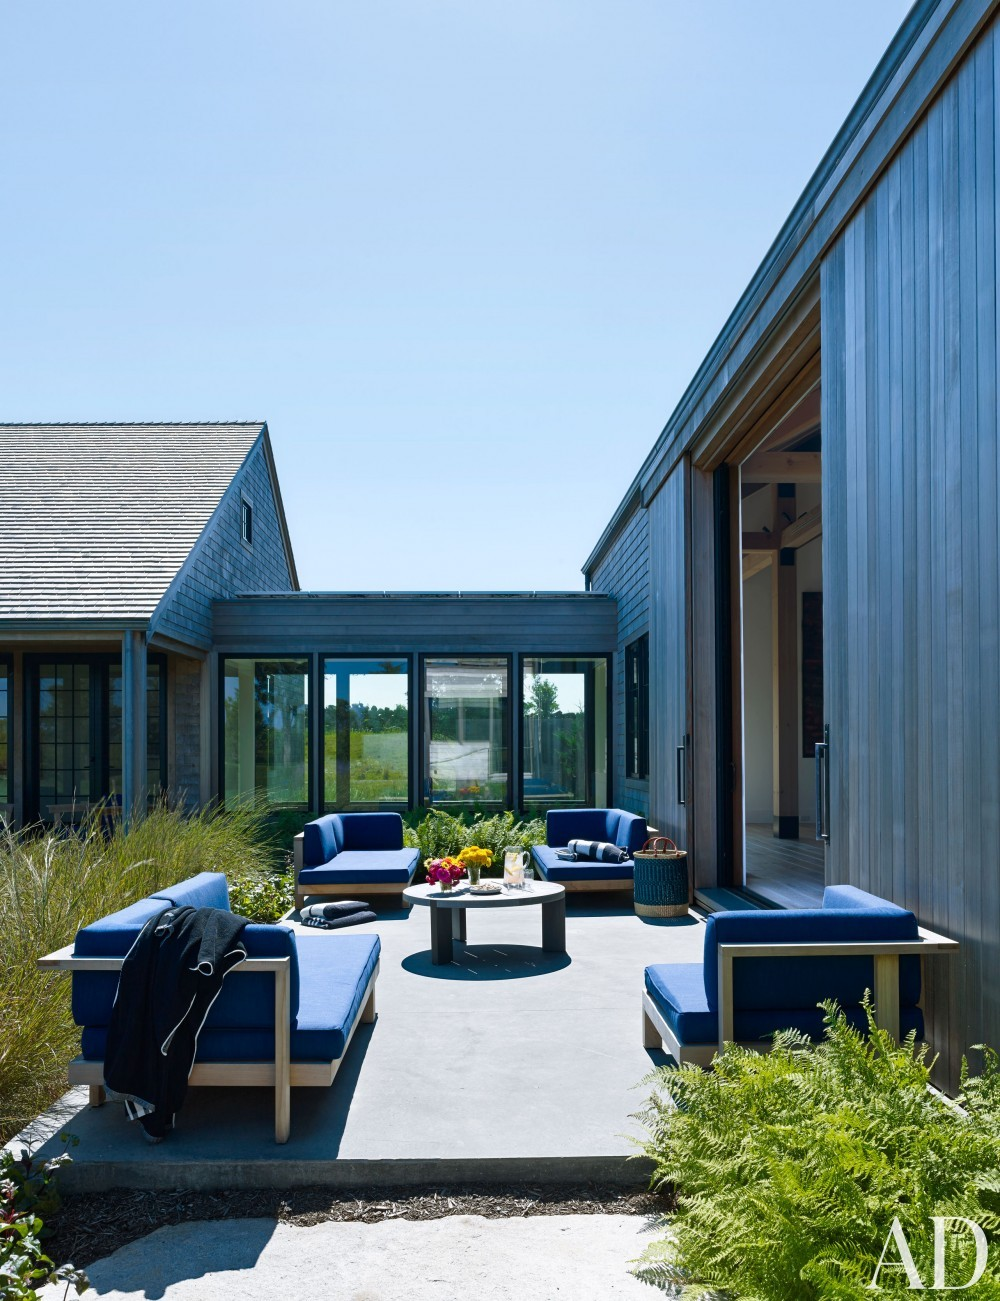 Modern Outdoor Living by Ashe + Leandro and Ashe + Leandro in Martha\'s Vineyard, MA